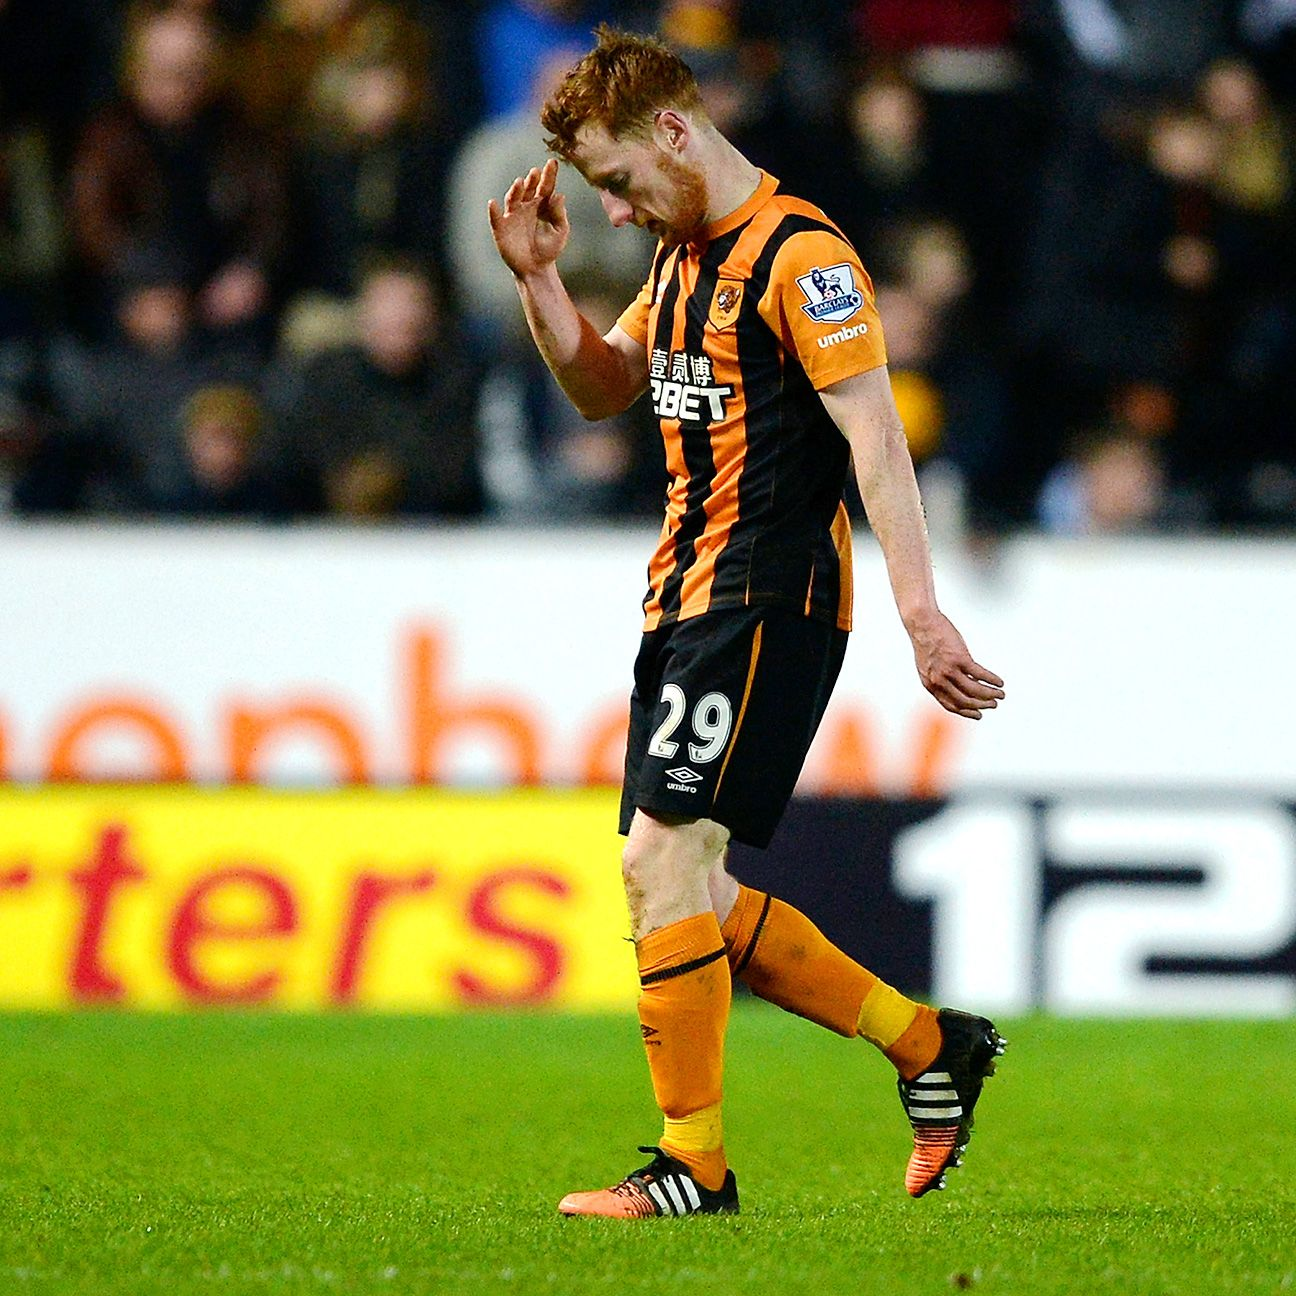 Hull City's frustrating day was capped by Stephen Quinn's sending off.